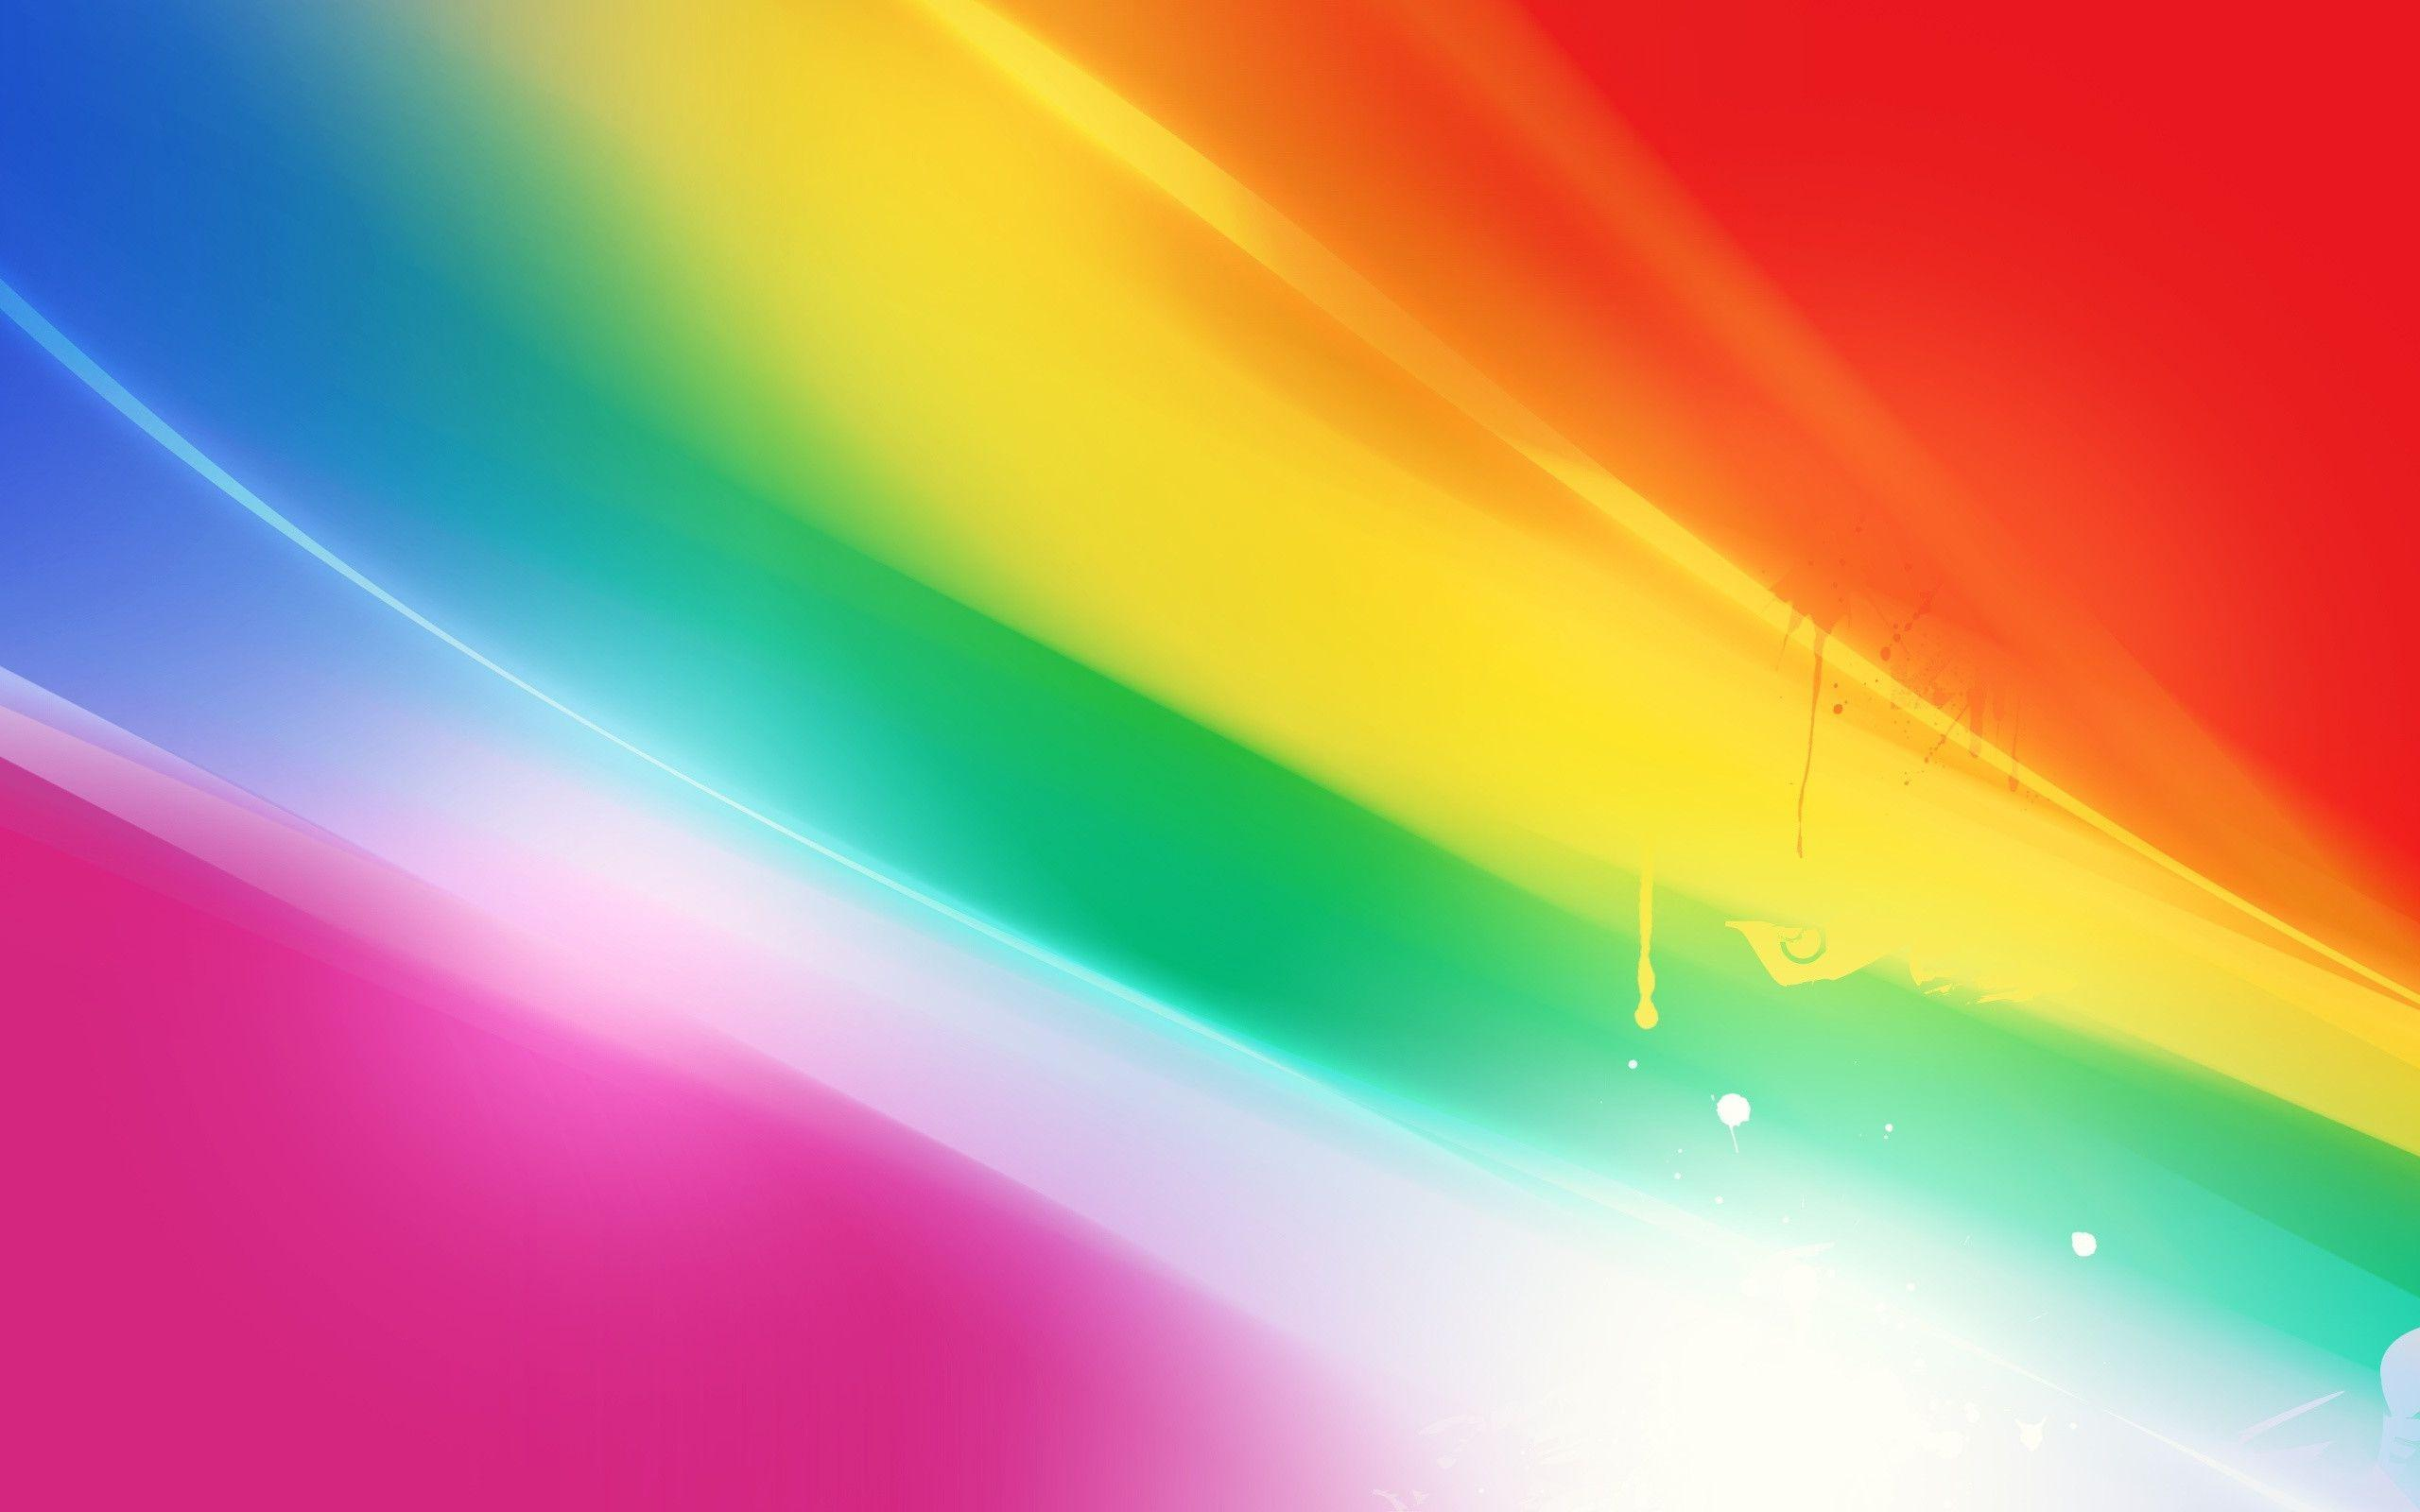 Colorful Backgrounds Free - Wallpaper Cave